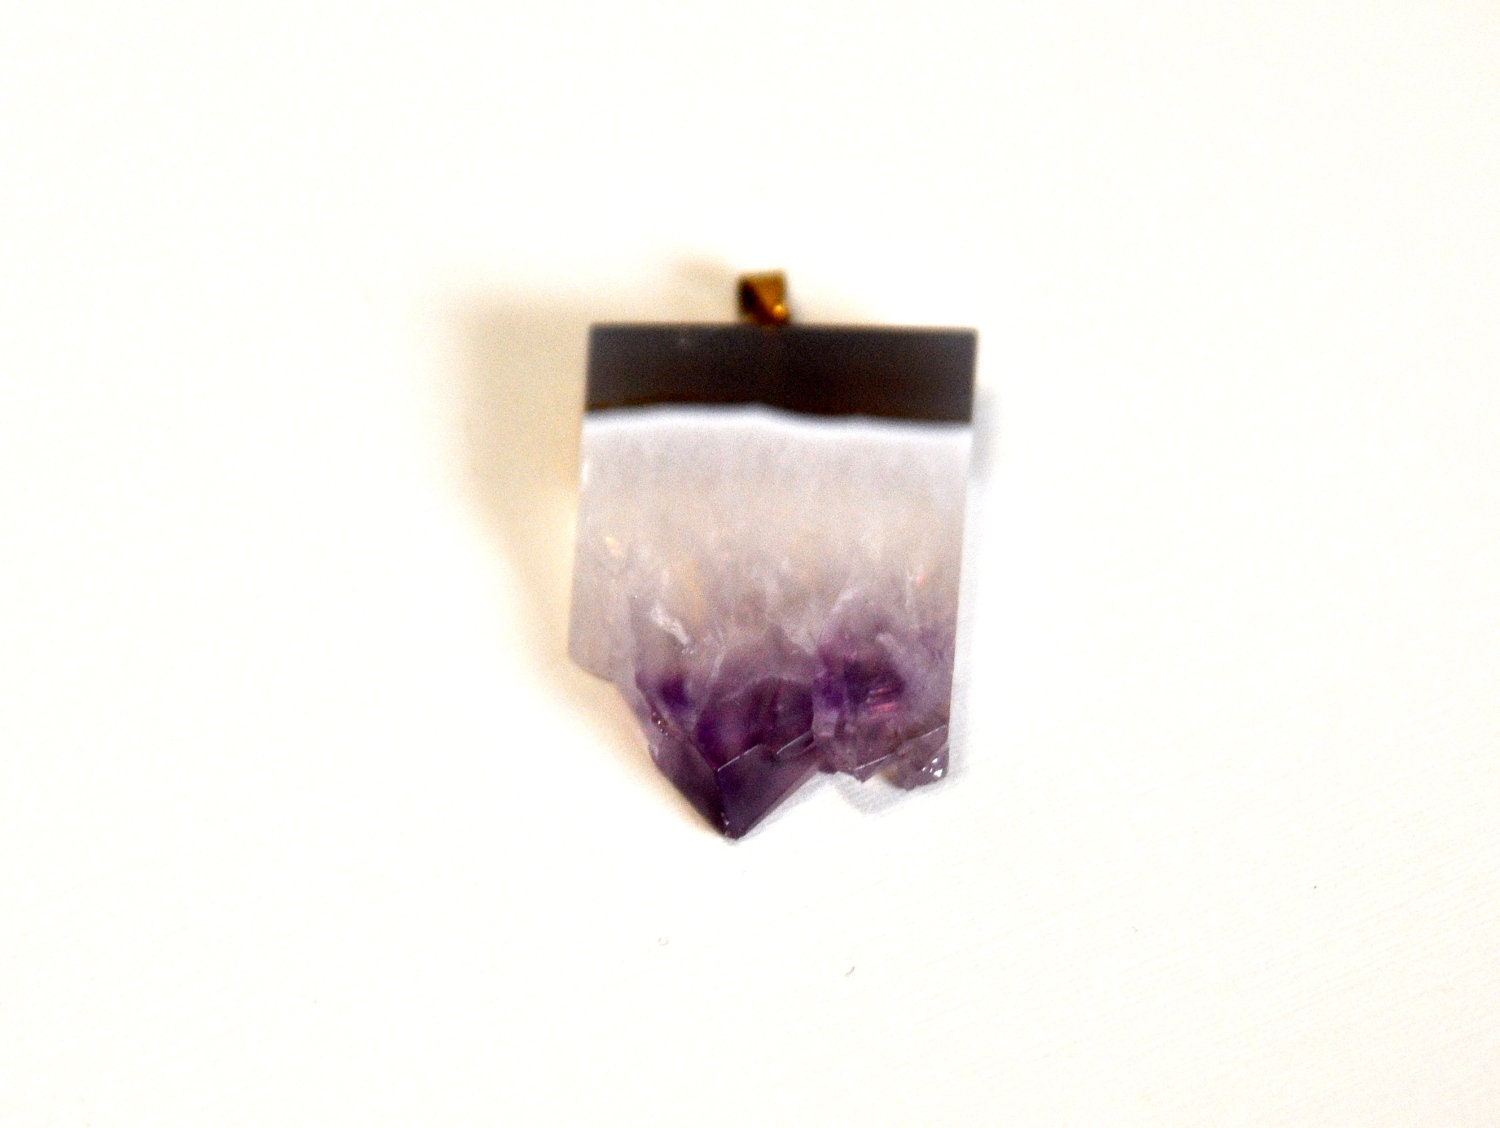 Raw Amethyst Stone Pendant - SALE ITEM deeply discounted